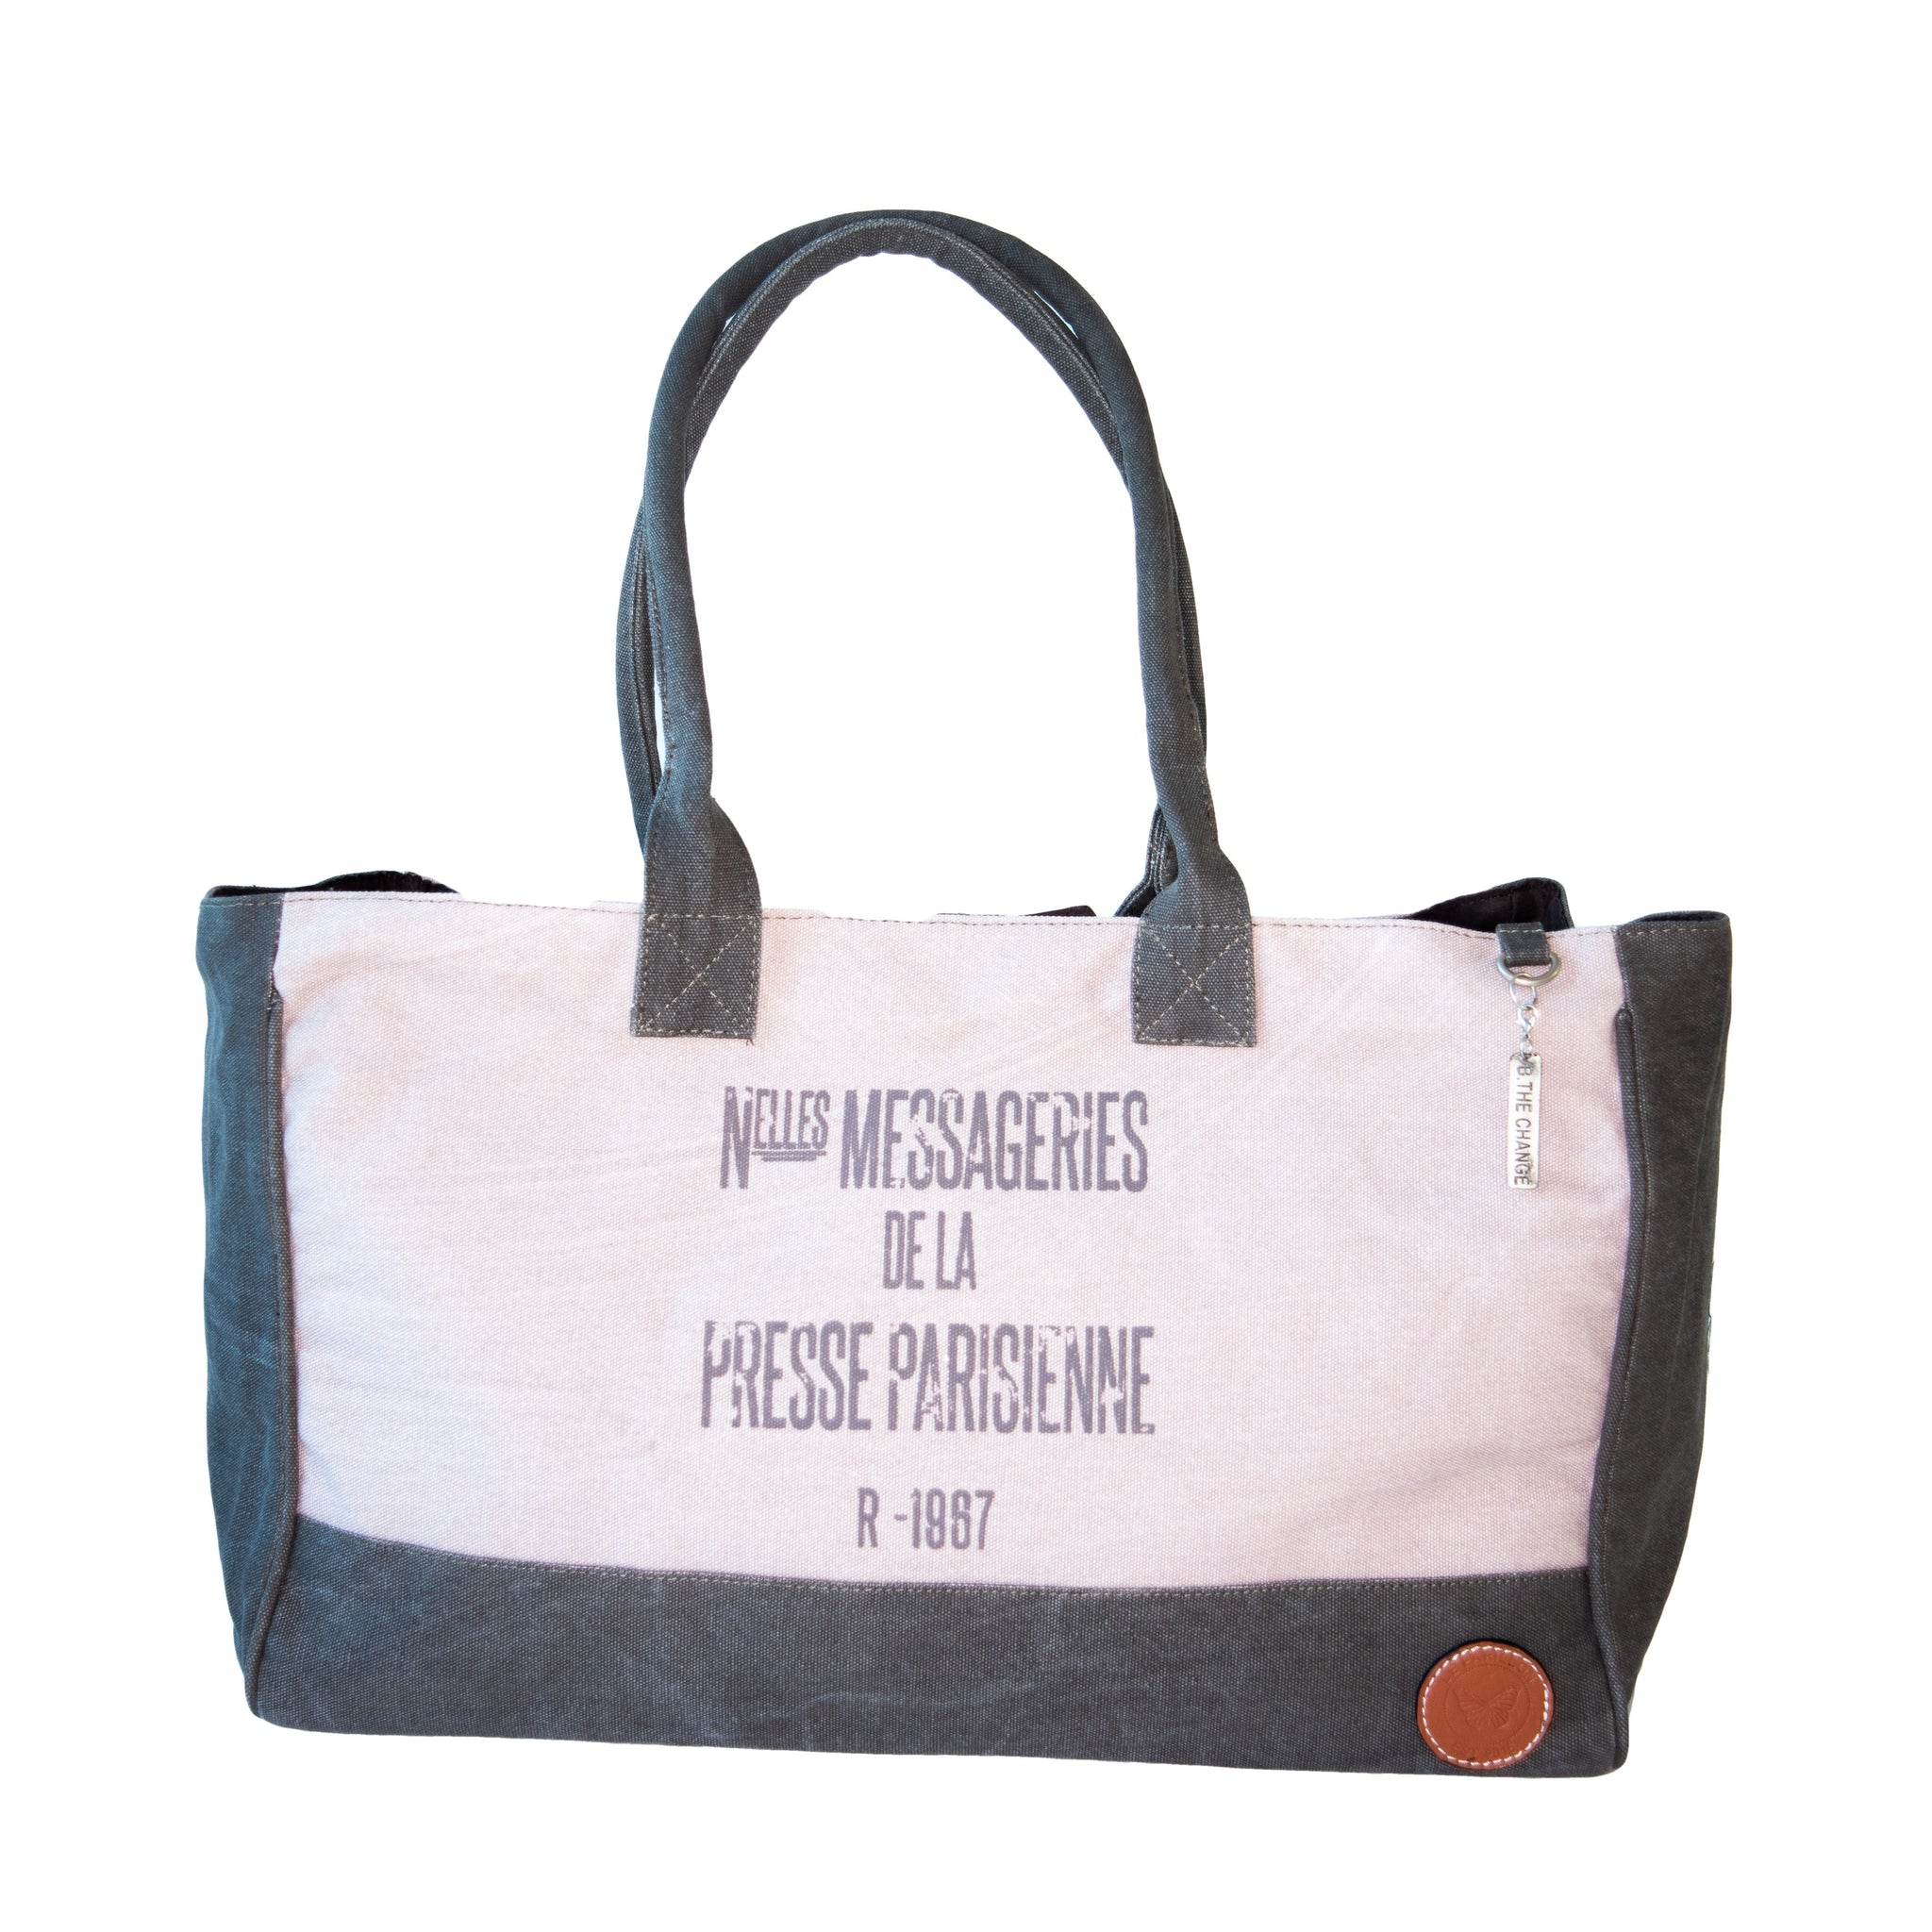 Presse Parisienne Canvas Tote